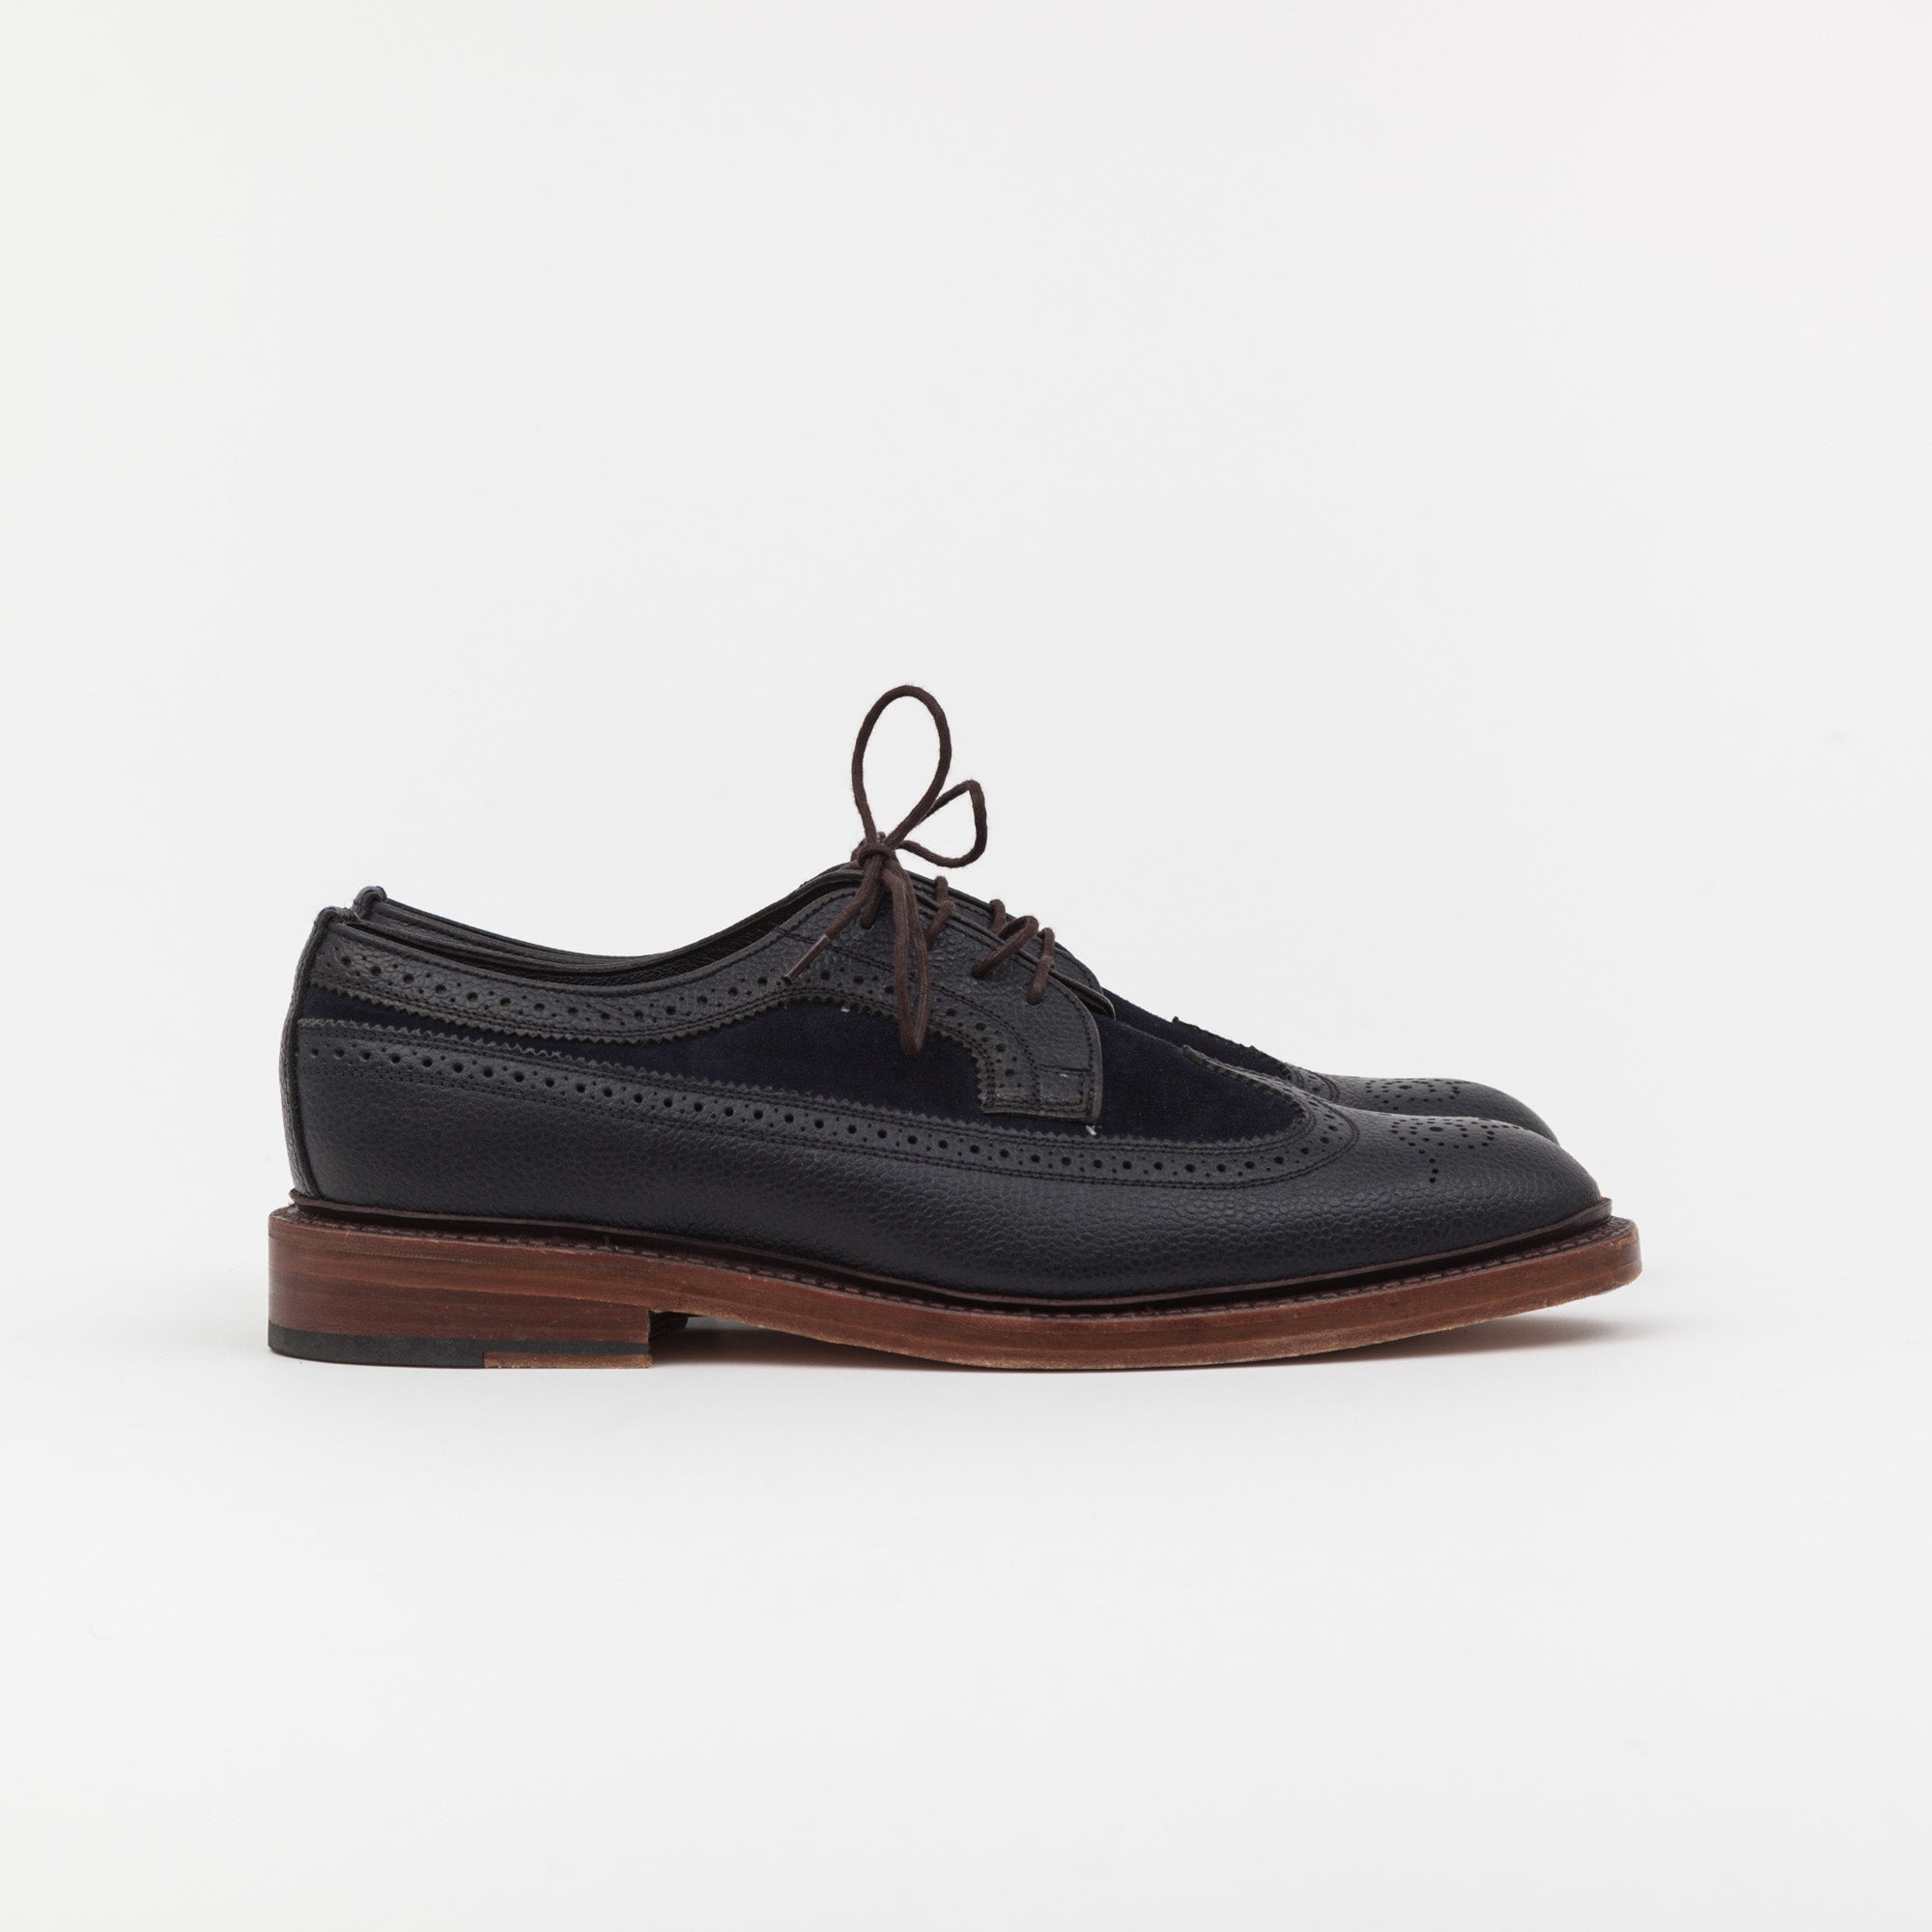 Marcus De Pebble Grain Leather Brogues